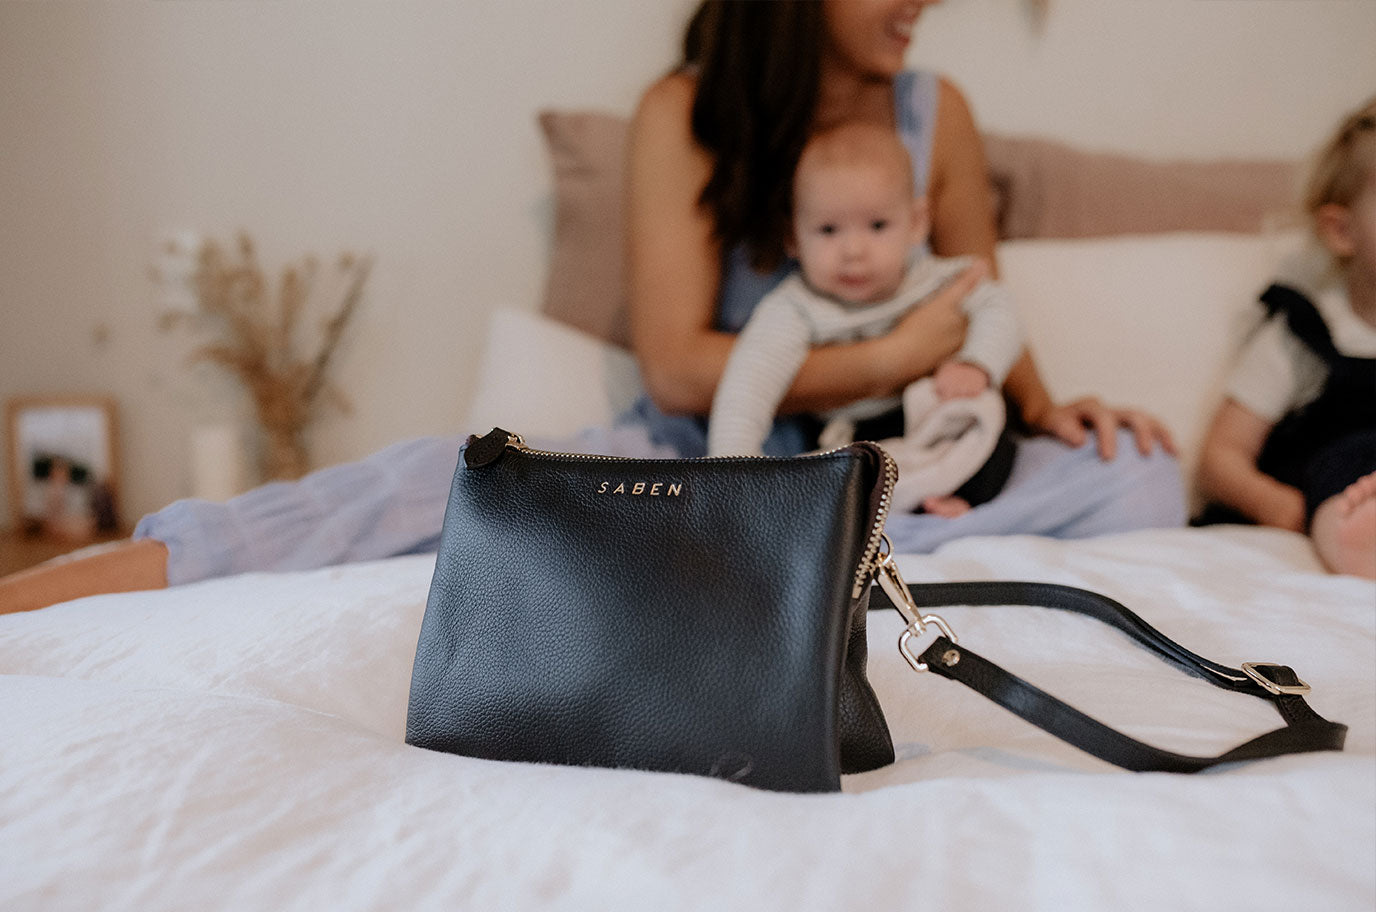 spoil her with saben handbags mothers day 2021